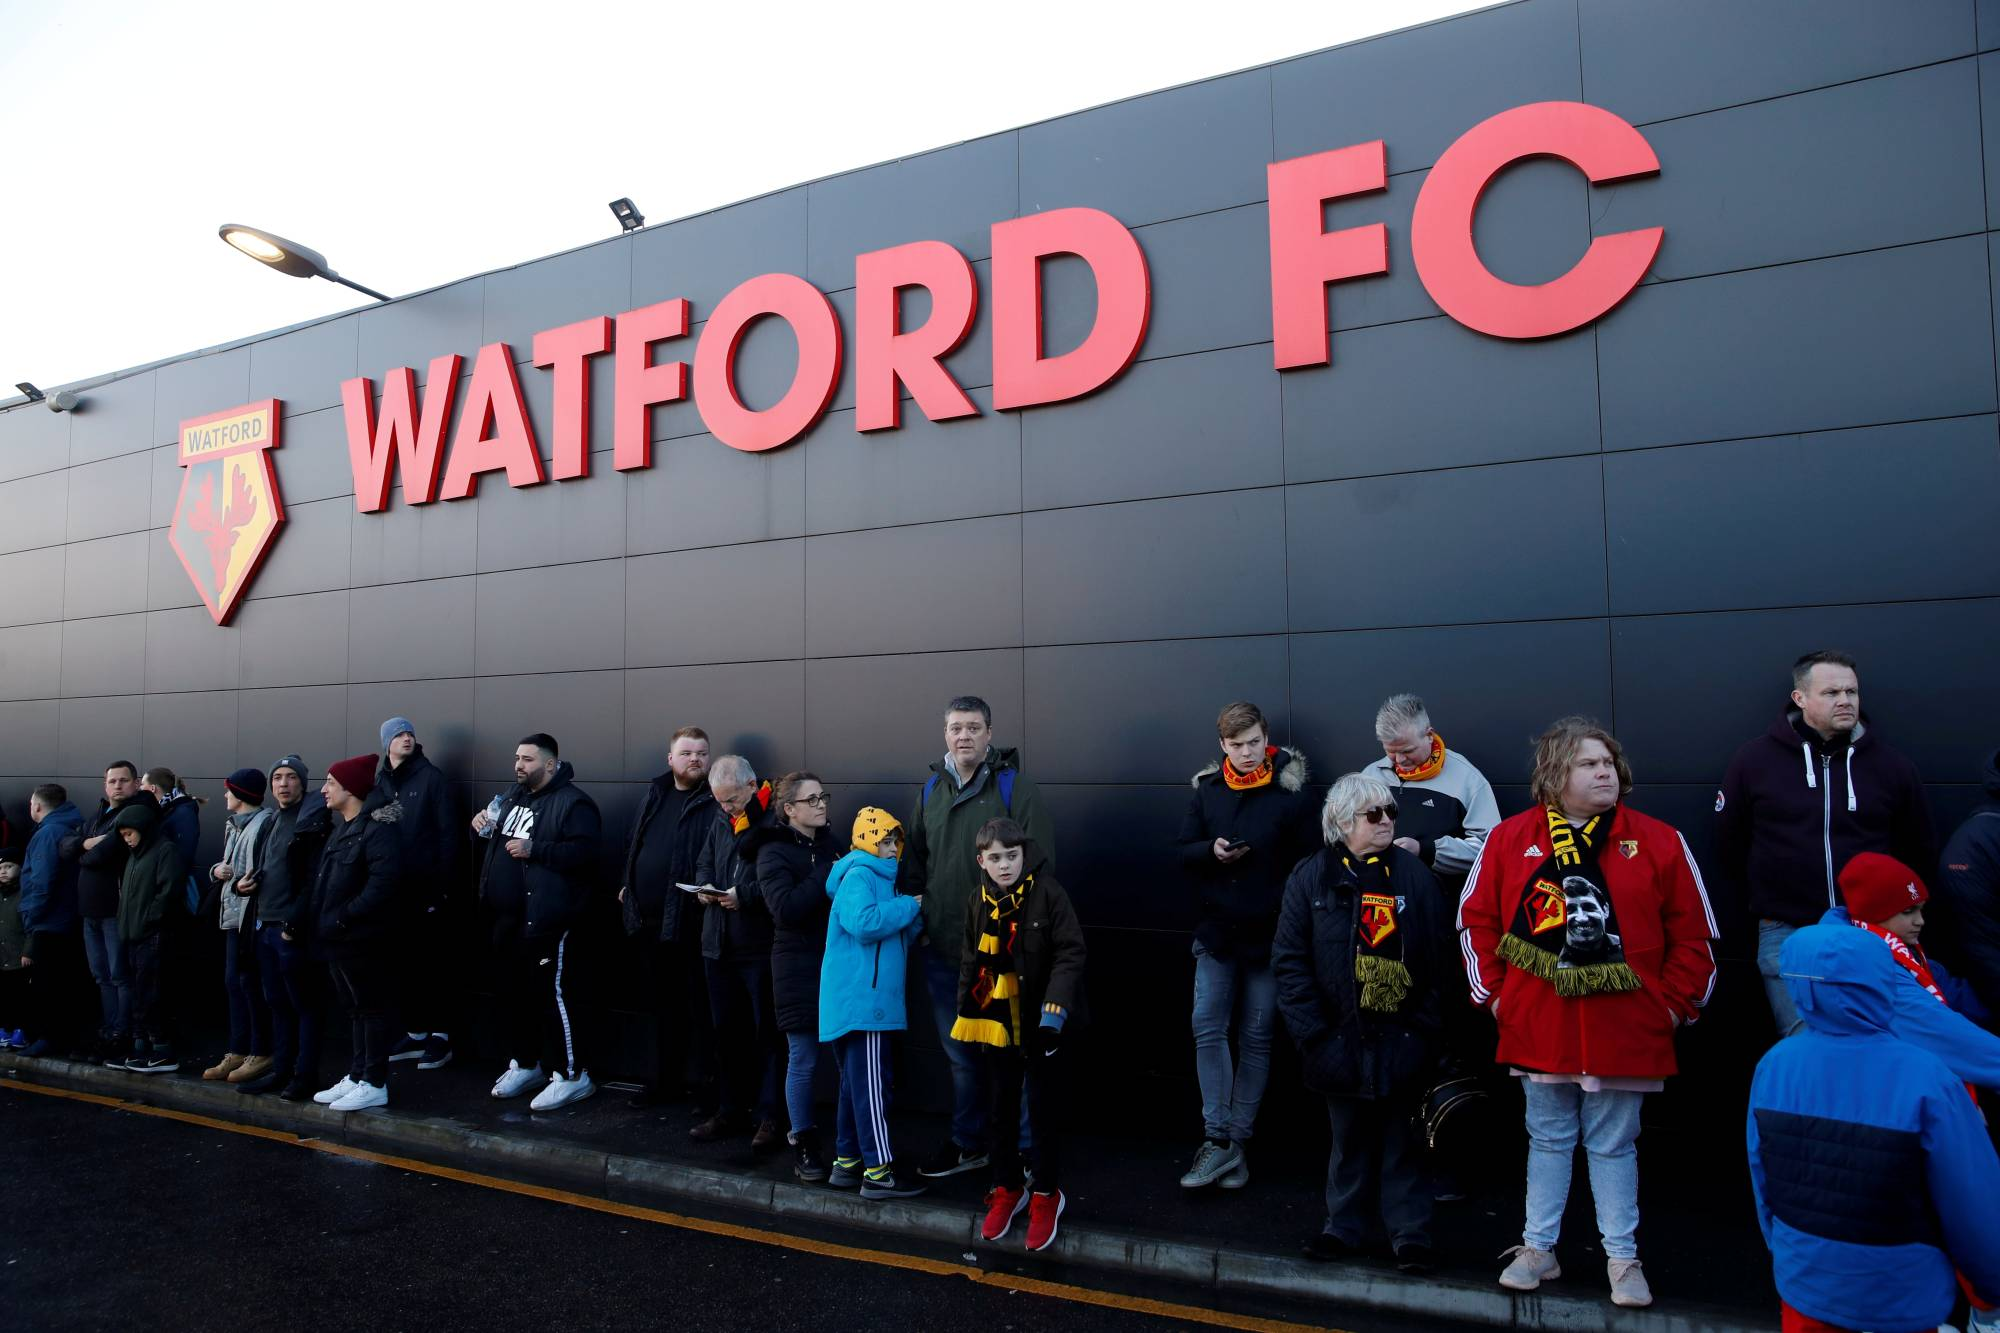 Fans wait outside Watford's home stadium of Vicarage Road on Feb. 29 in Watford, England. | REUTERS